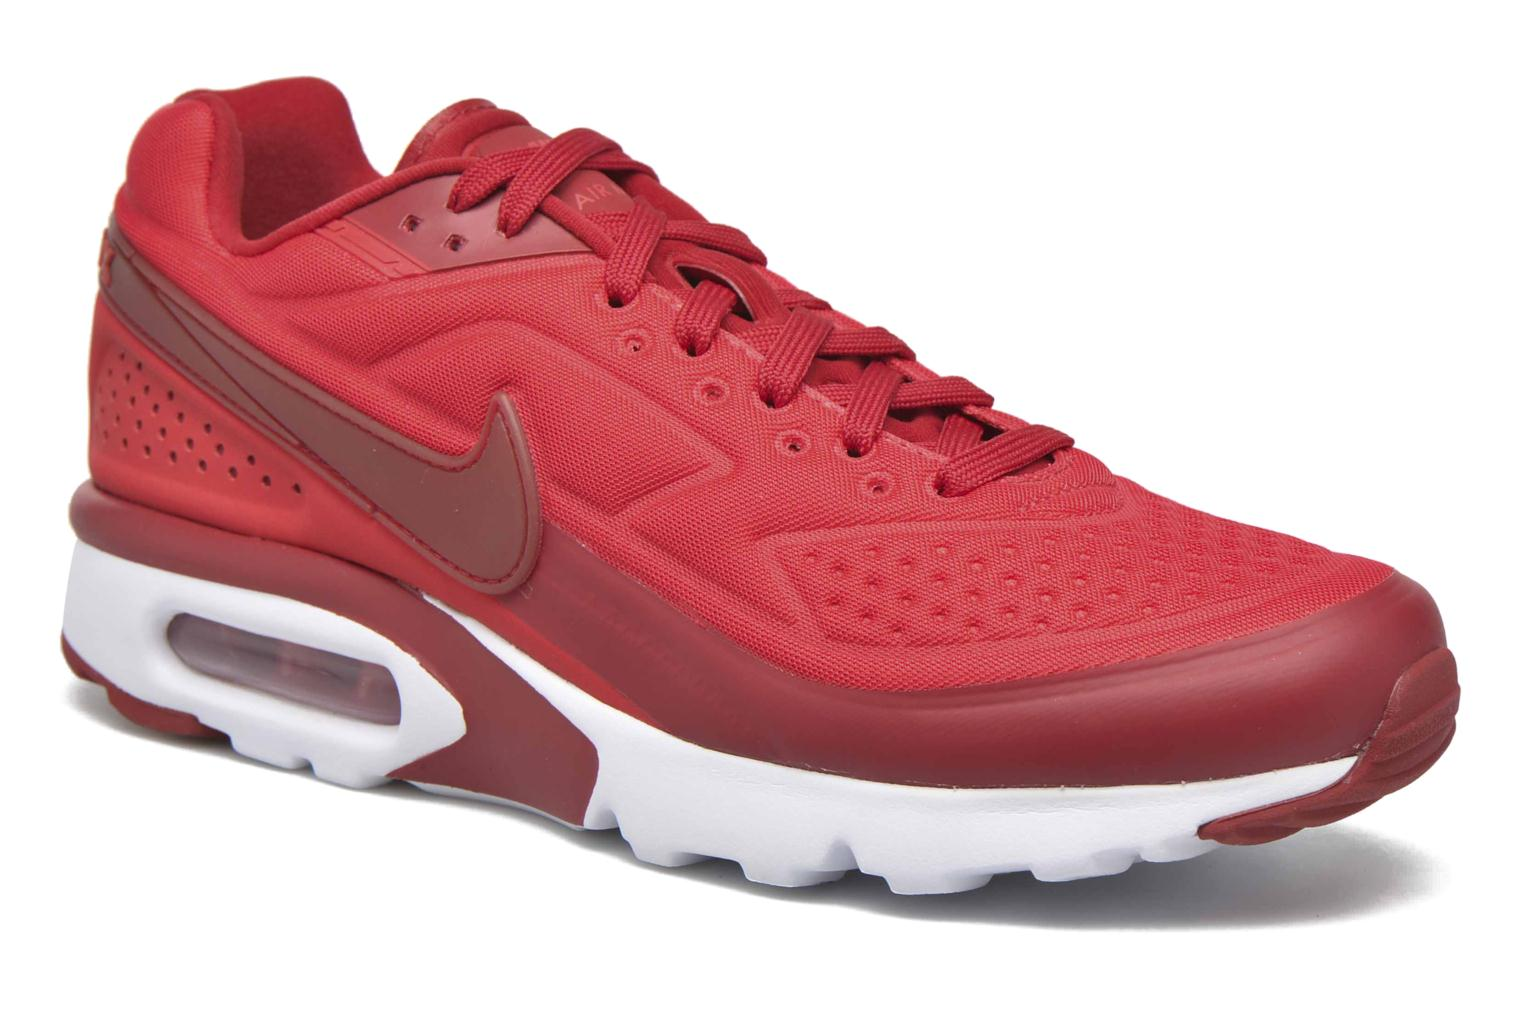 Nike Air Max Bw Ultra Se Action Red/Gym Red-White